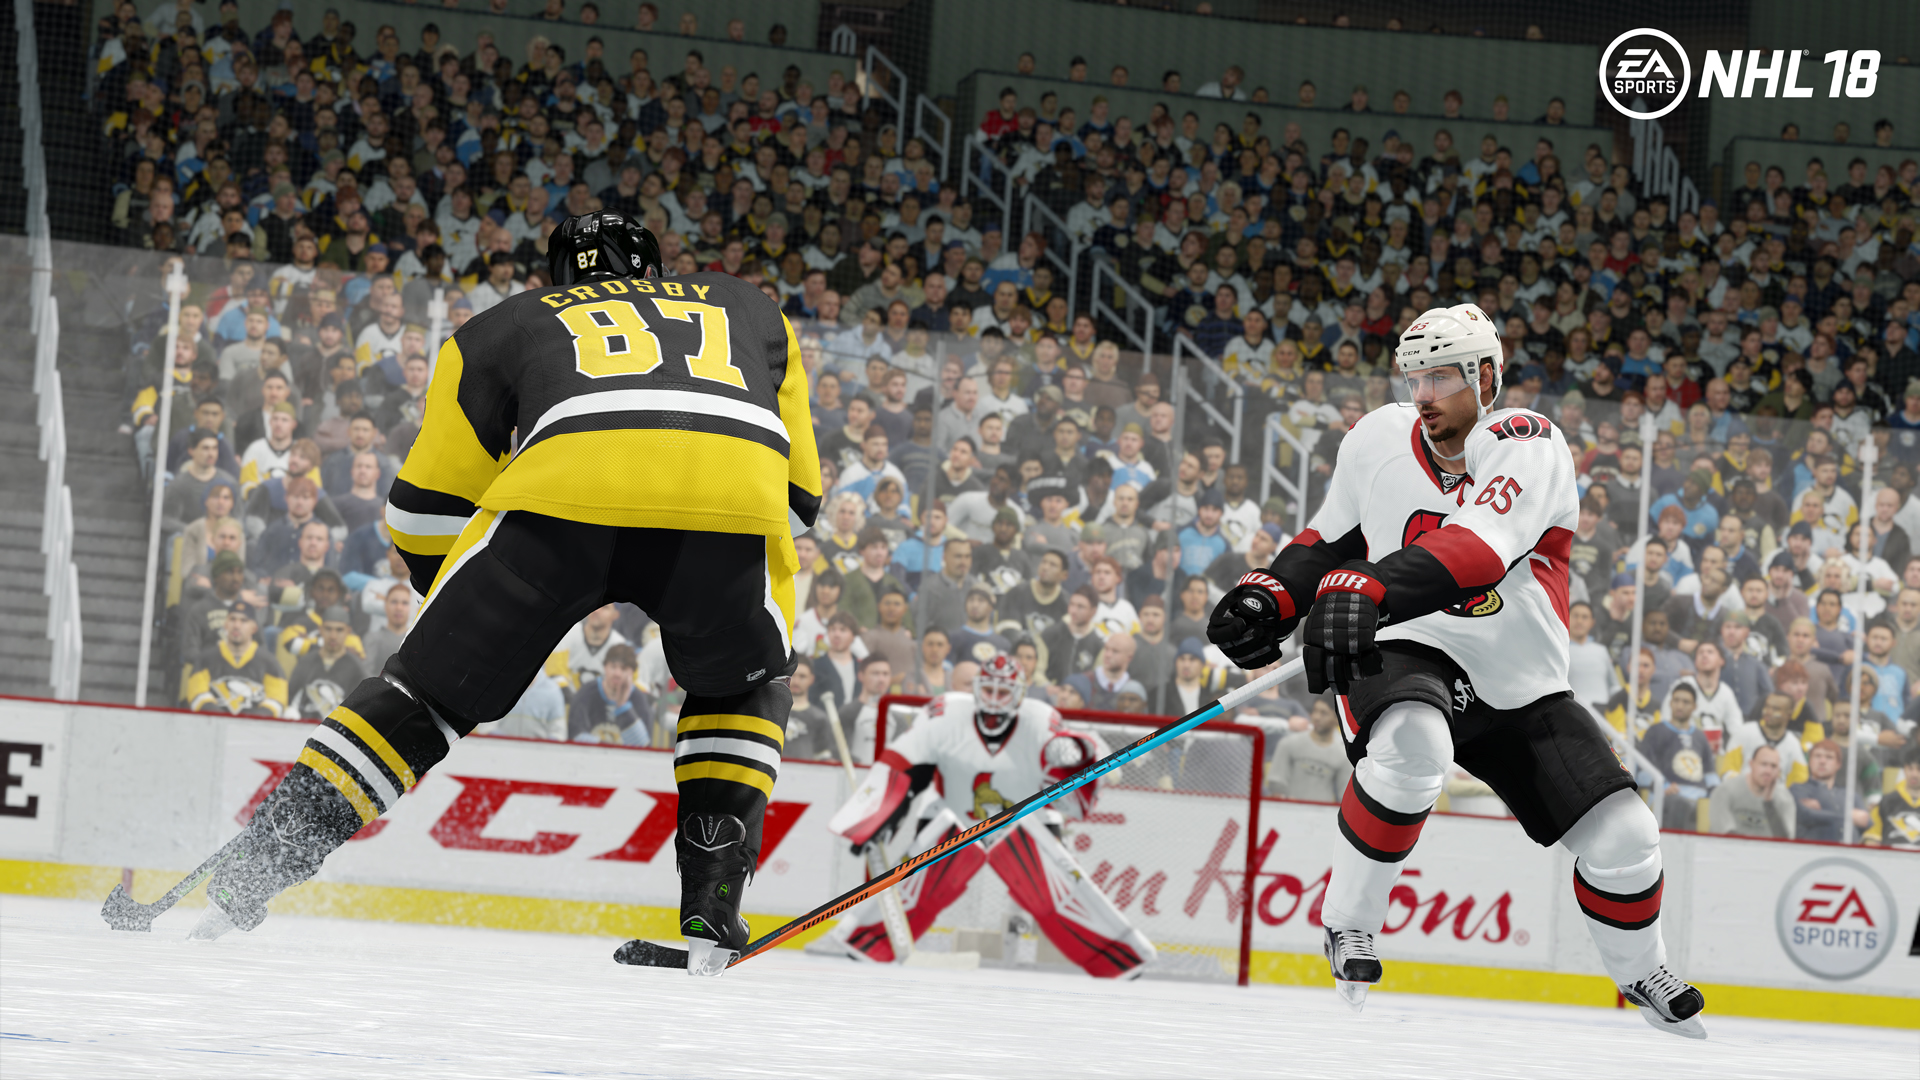 Review Nhl 18 Playstation 4 Xbox One Gamingboulevard